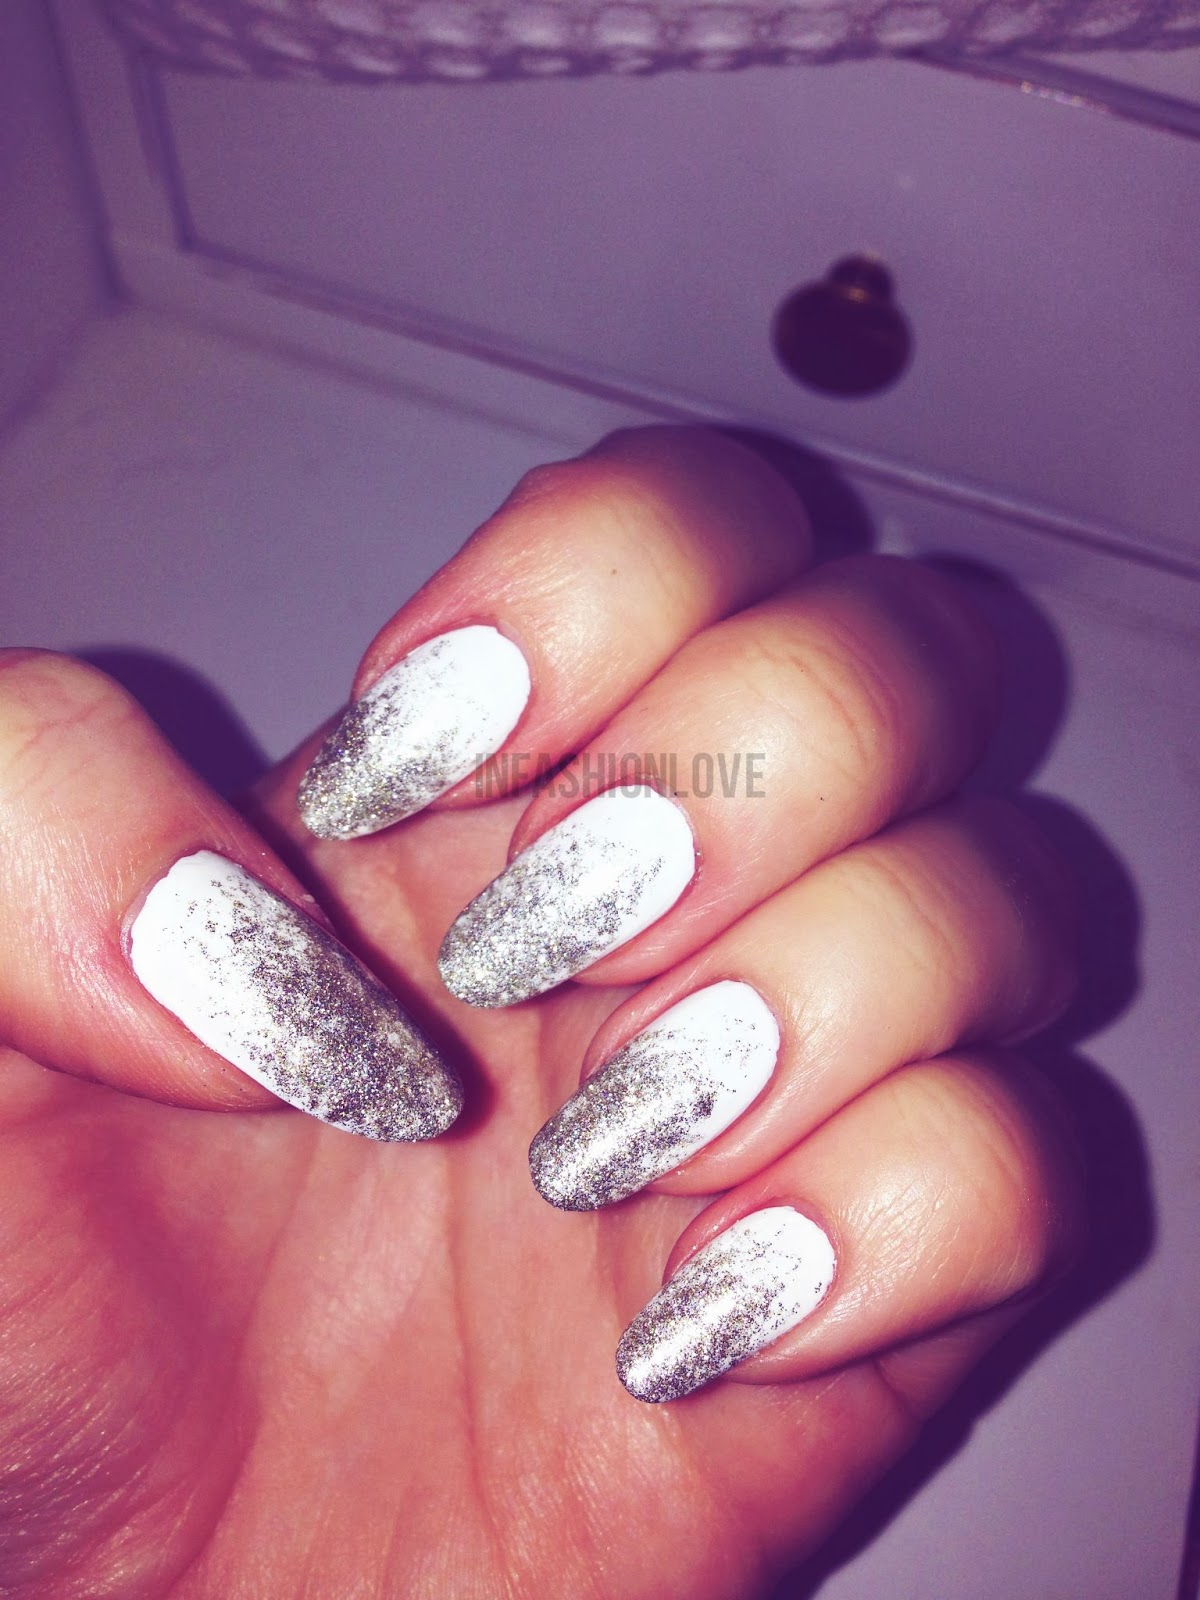 INFASHIONLOVE.COM: On-Trend: White & Silver Ombre Glitter Nail Look!